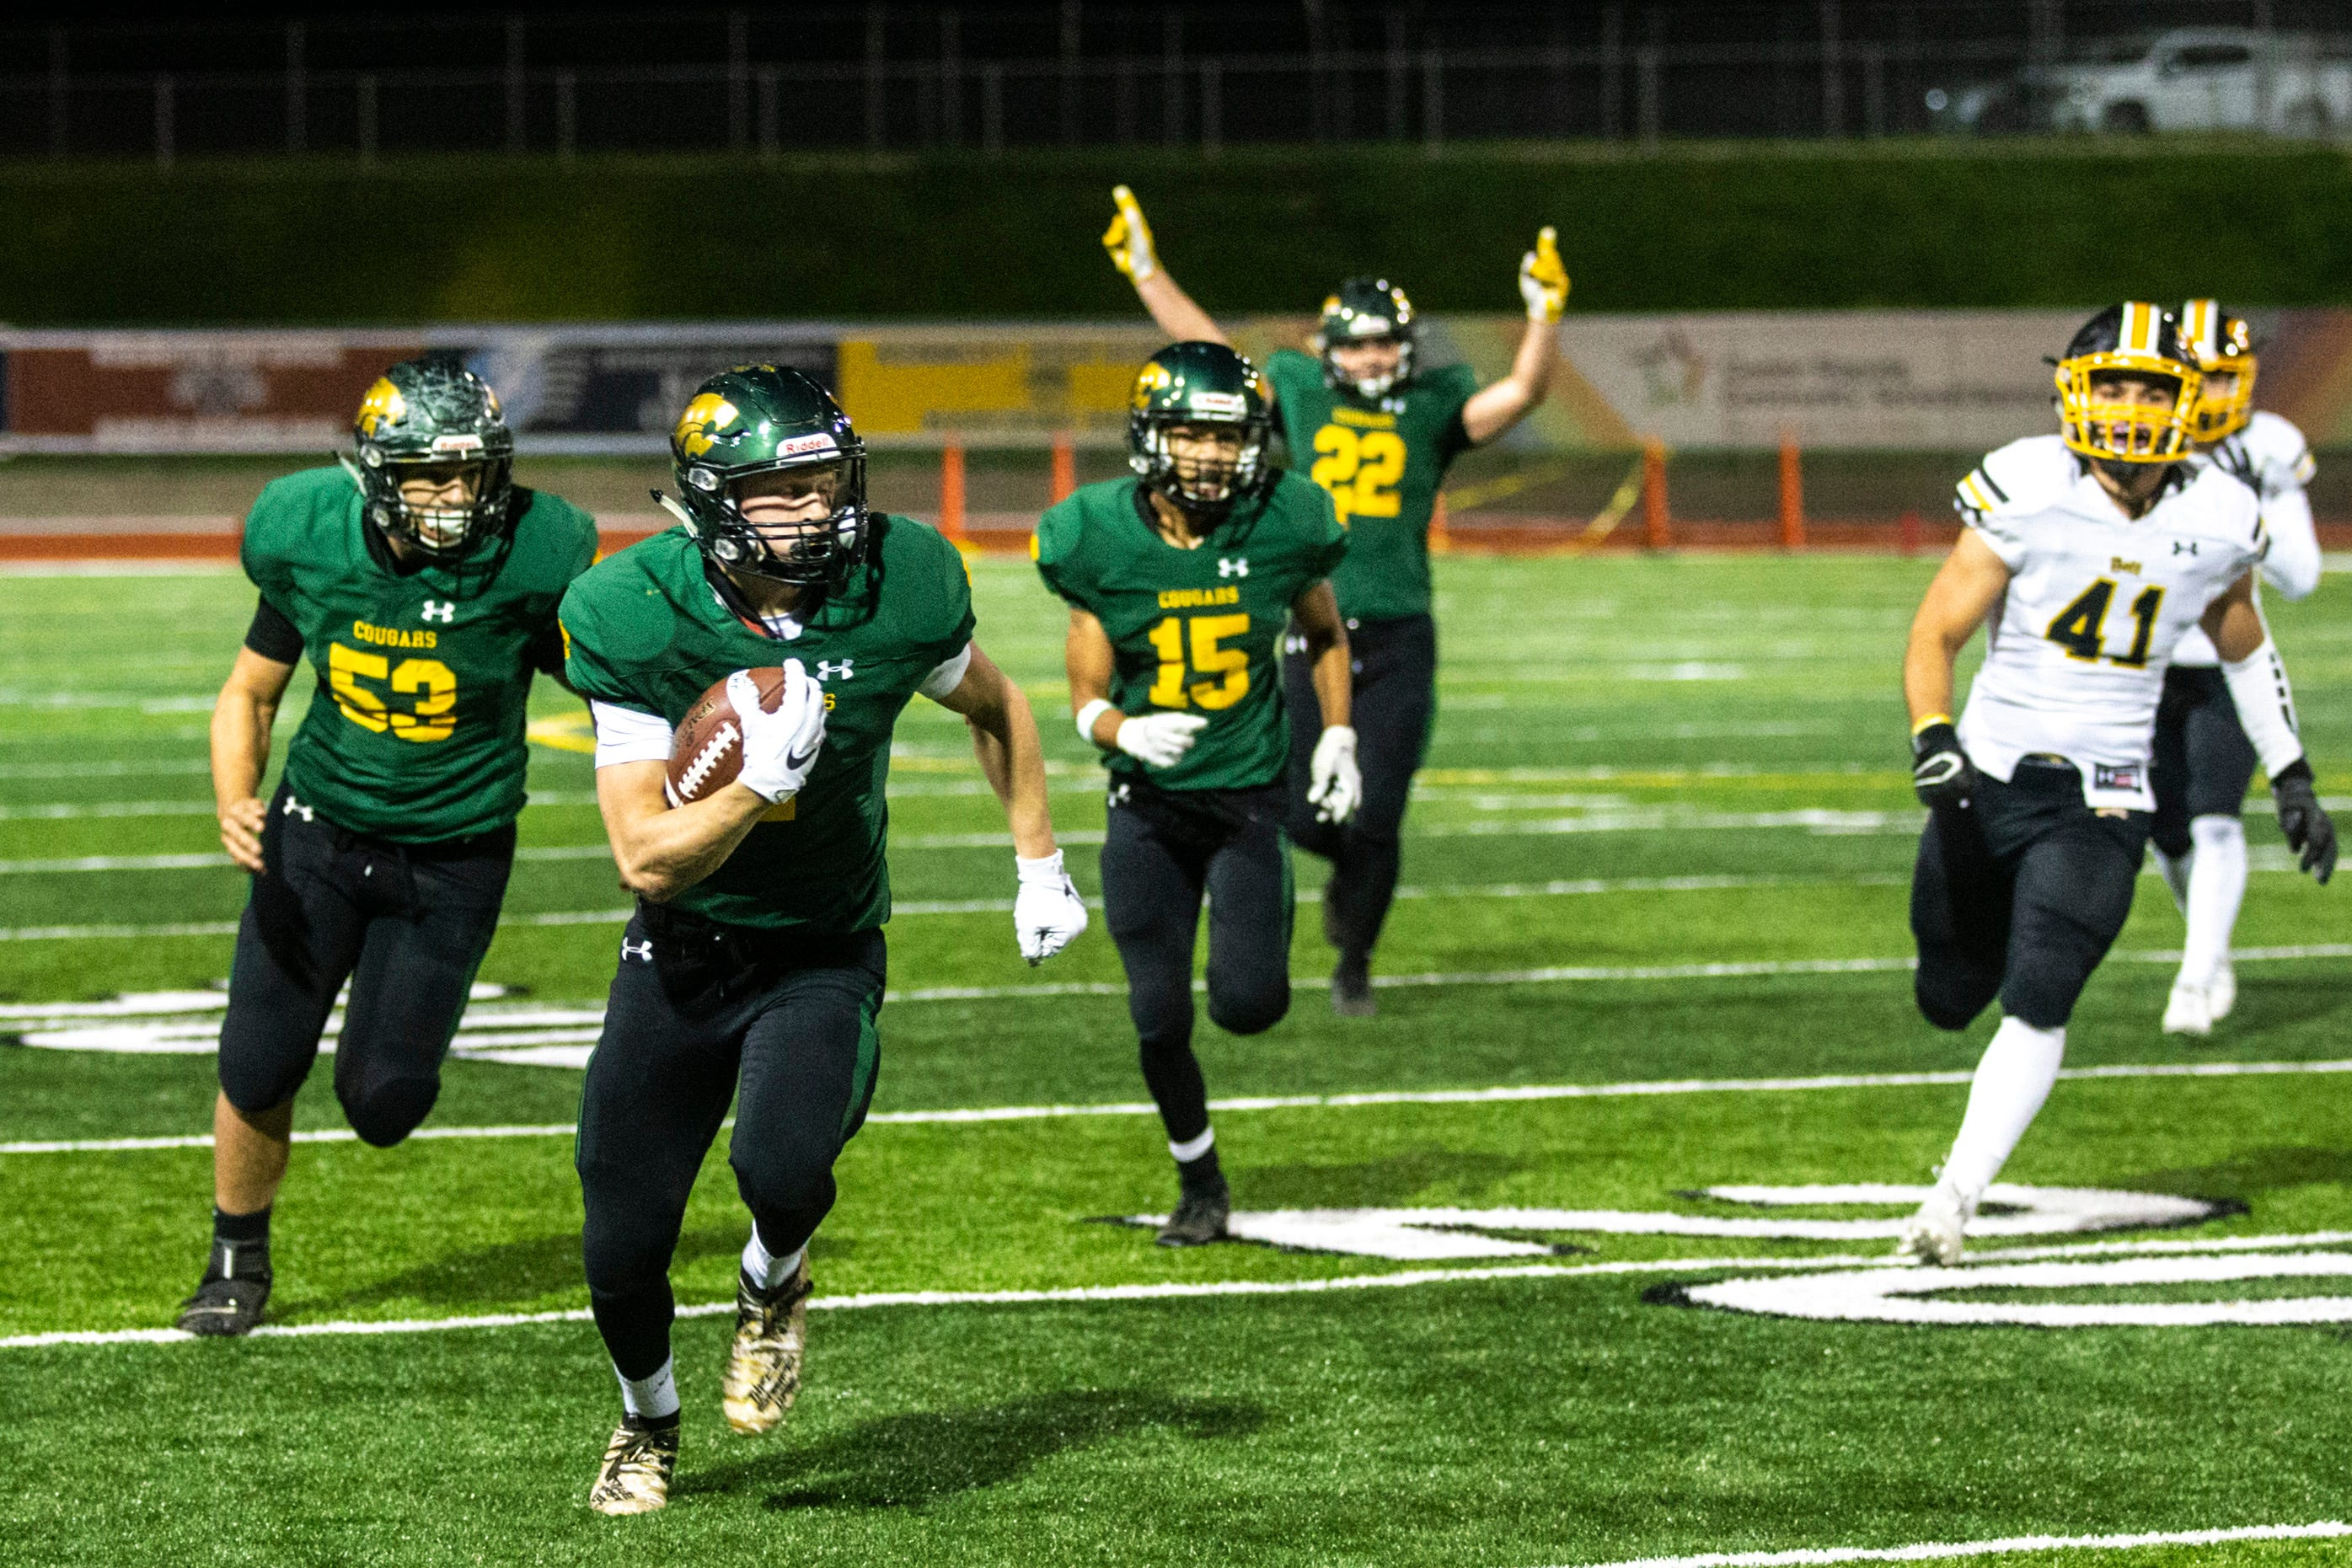 Photos: No. 4 Bettendorf vs. No. 5 Cedar Rapids Kennedy